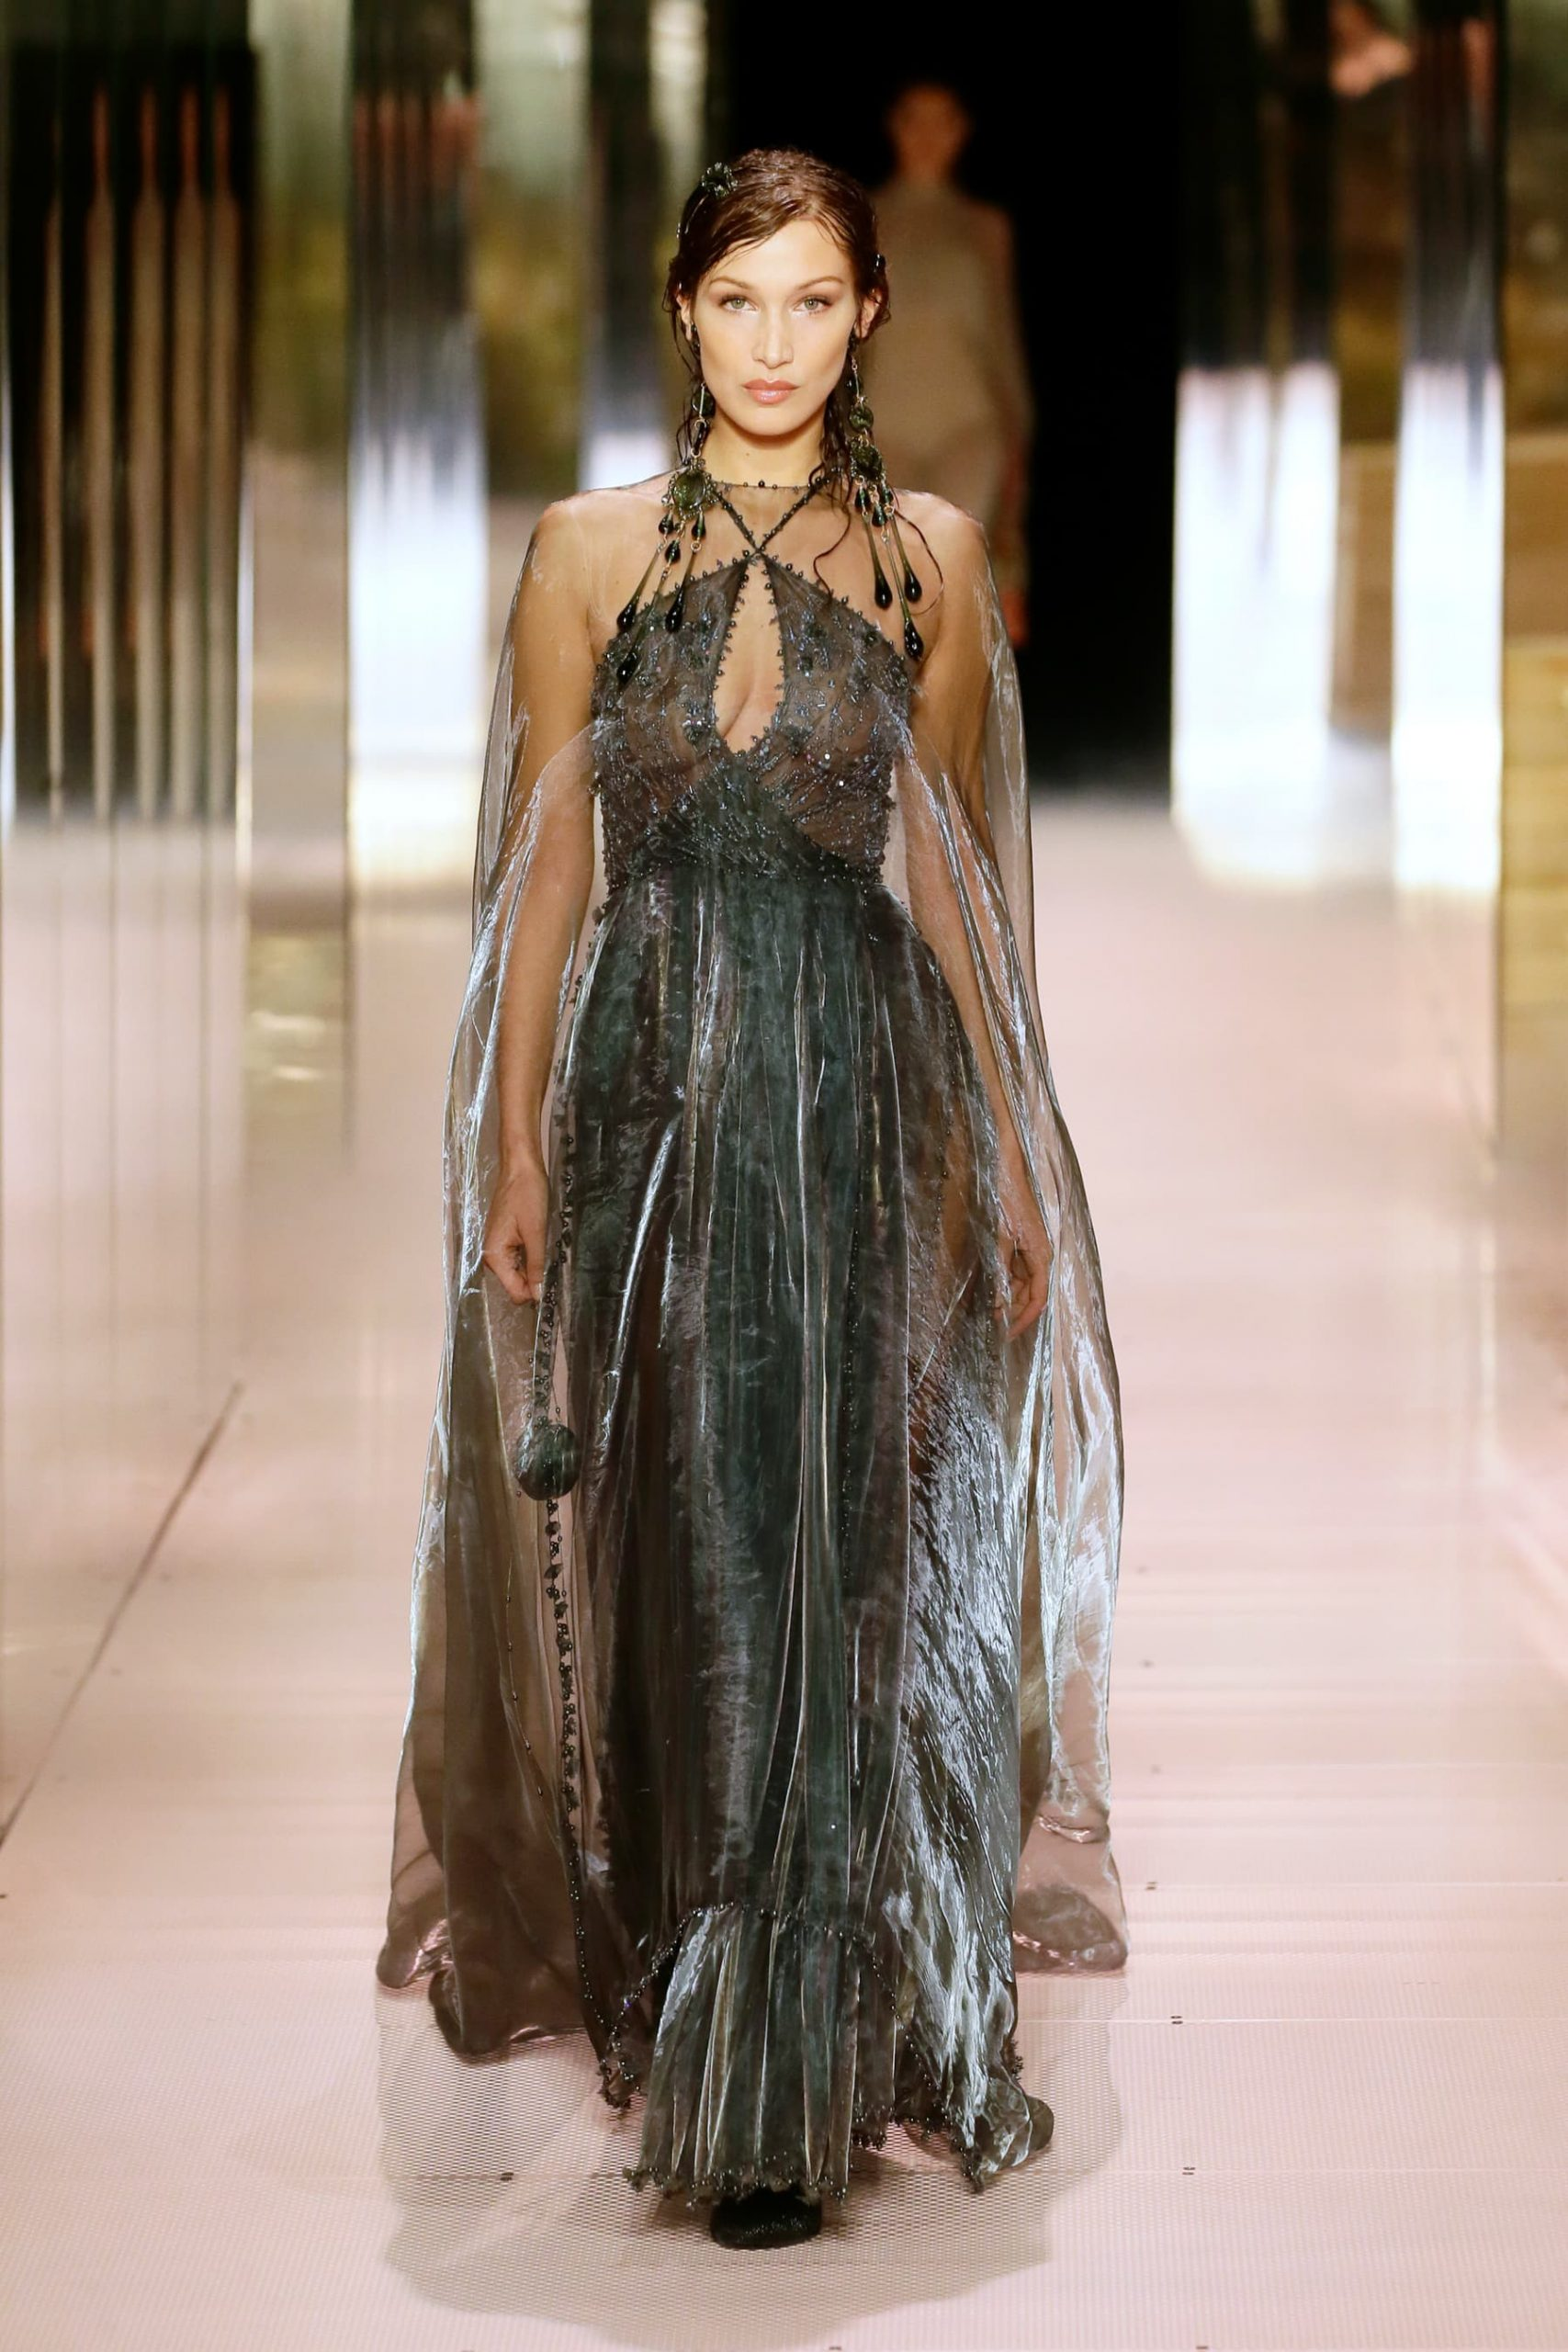 Fendi Spring 2021 Haute Couture Fashion Show Review